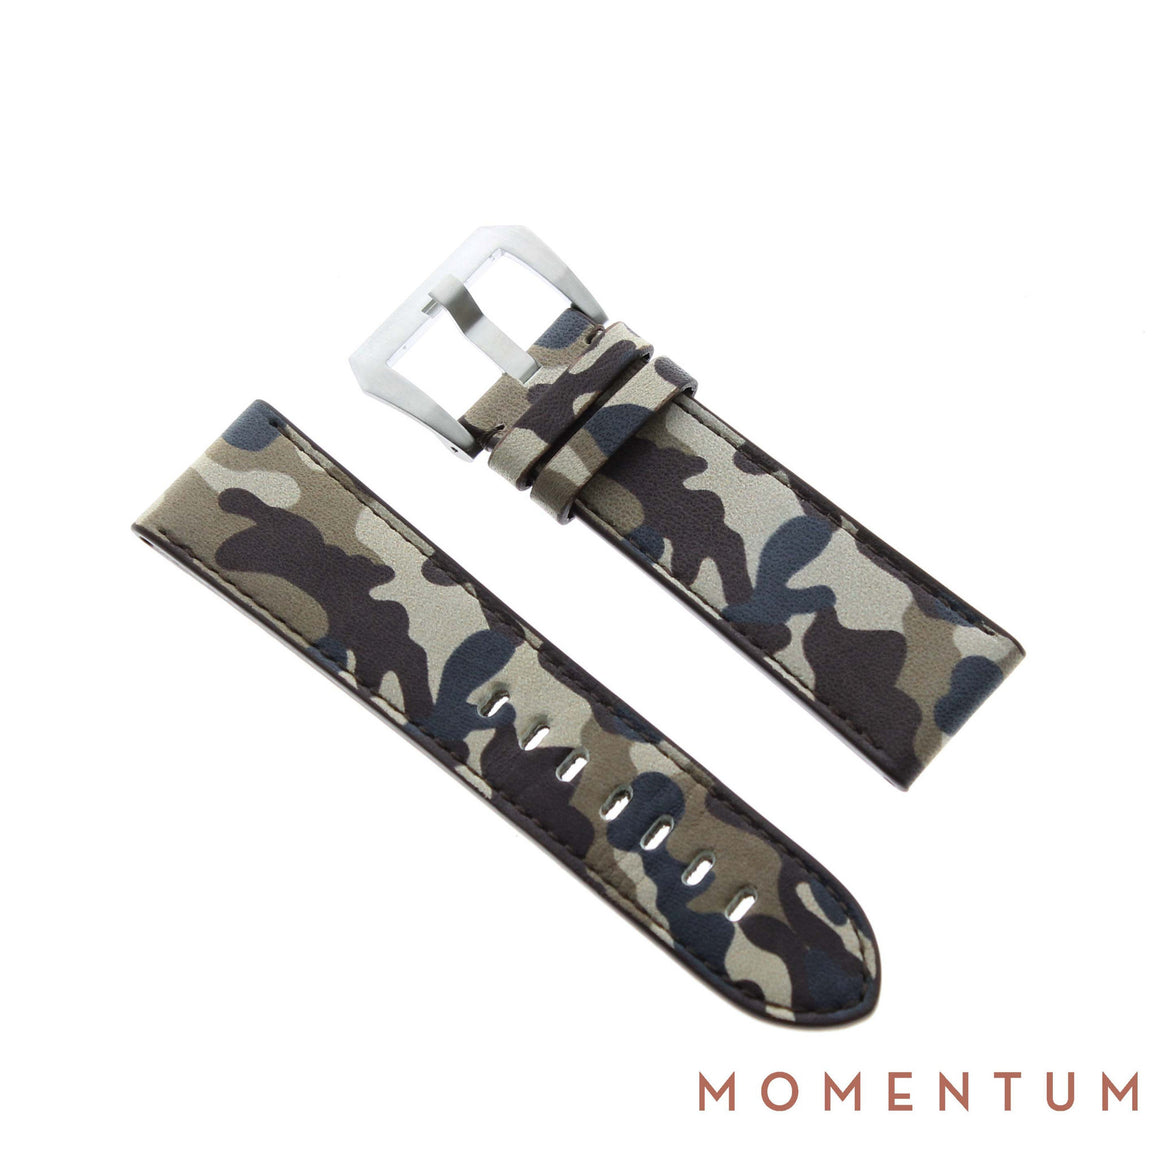 Vintage Strap - Camouflage 24mm - Calf Leather - Momentum Dubai